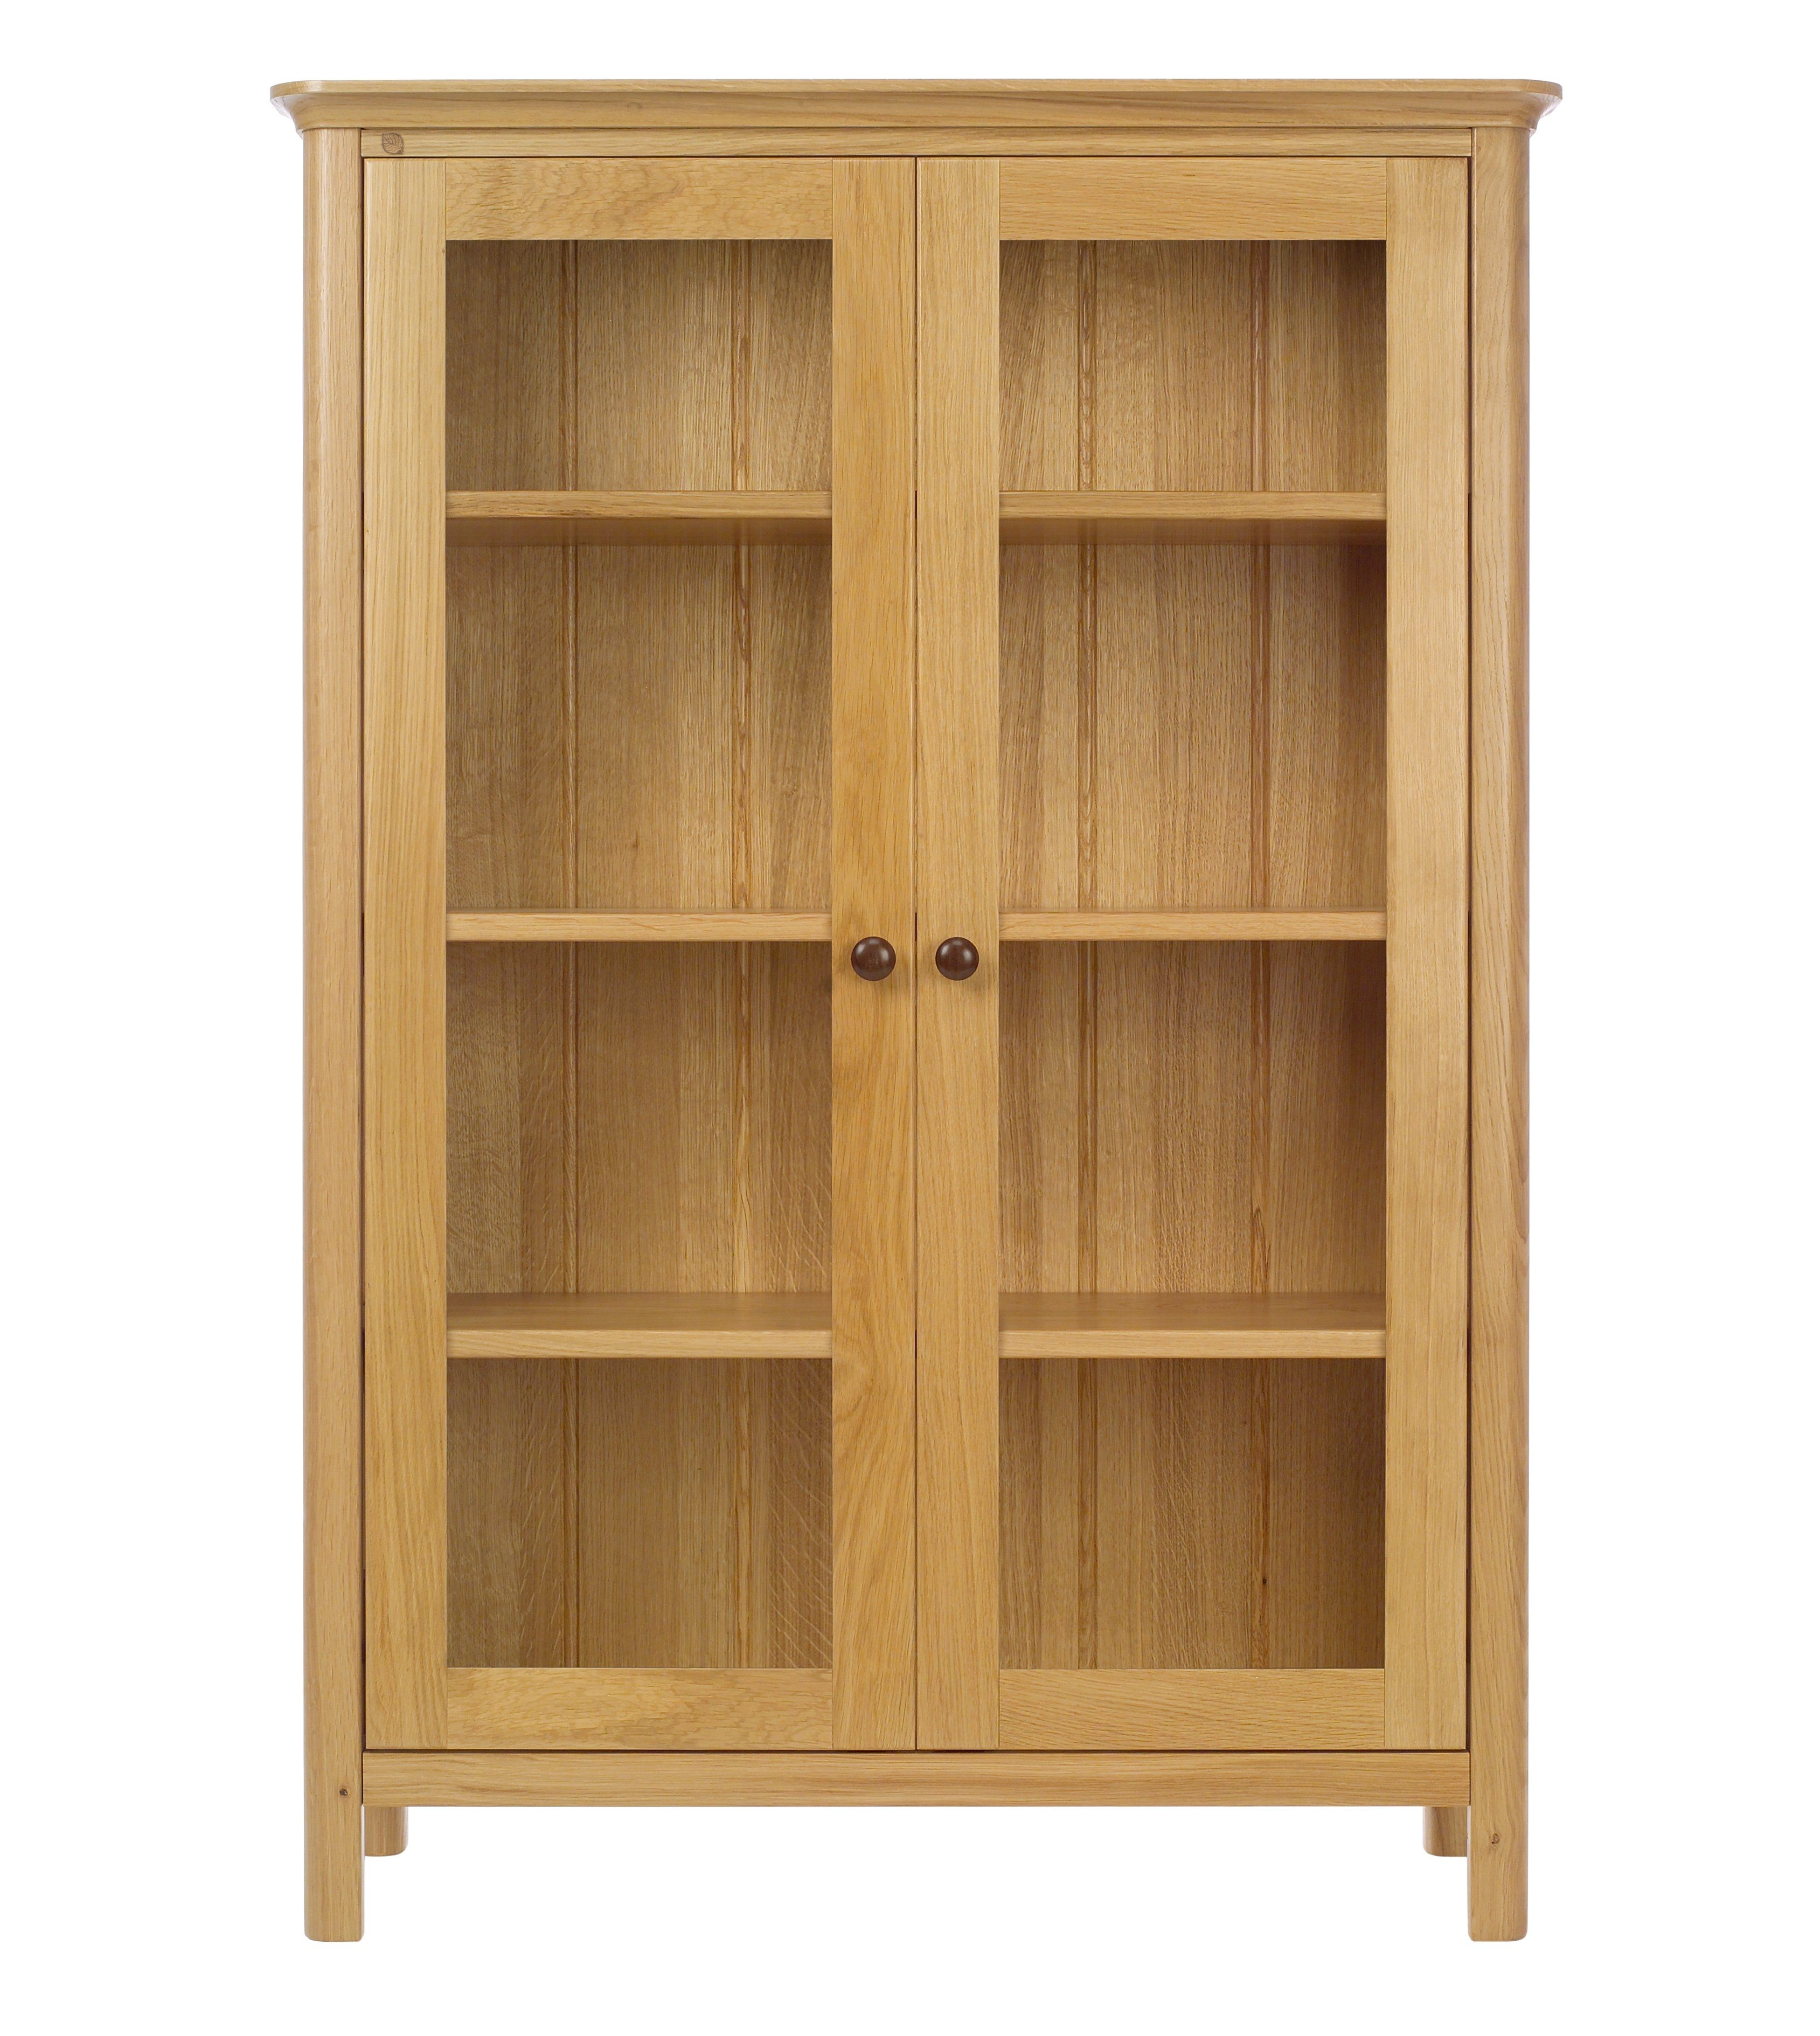 Wooden Bookshelf With Glass Doors In 2019 Bookcase With